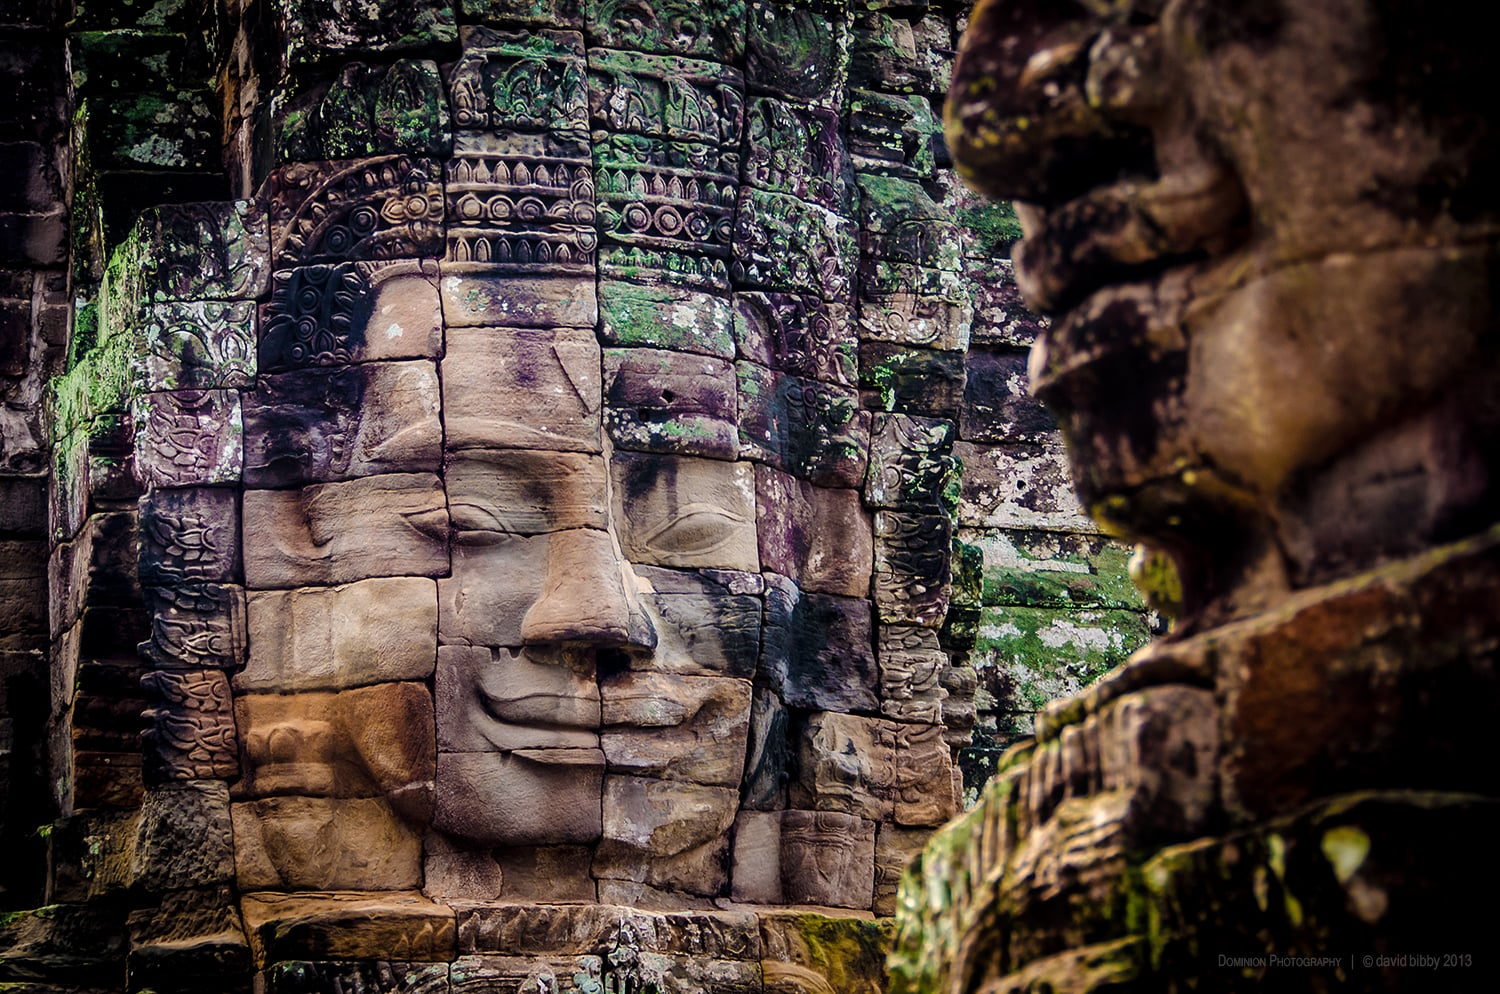 The Bayon  - 12th-13th century temple, Angkor Thom. The most striking aspect of the Bayon temple are the huge faces that adorn every side of the towers. Spectacular and awe inspiring. Angkor, Siem Reap Province, Cambodia.